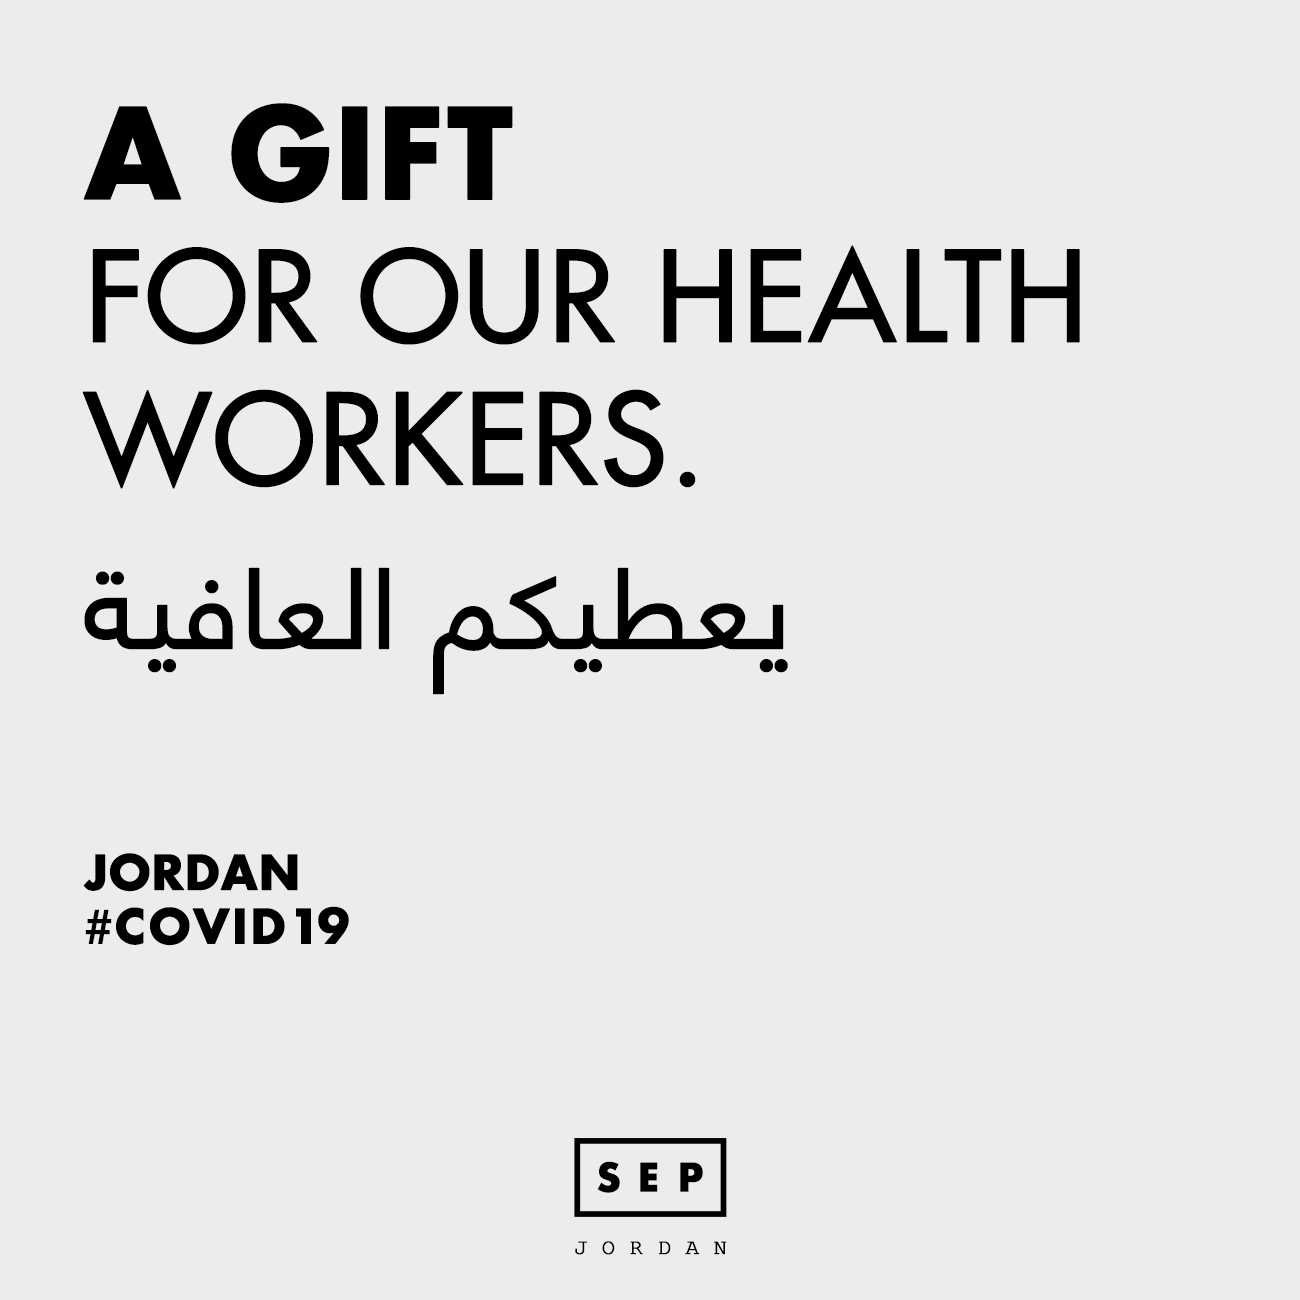 A Gift for our Health Workers - Jordan